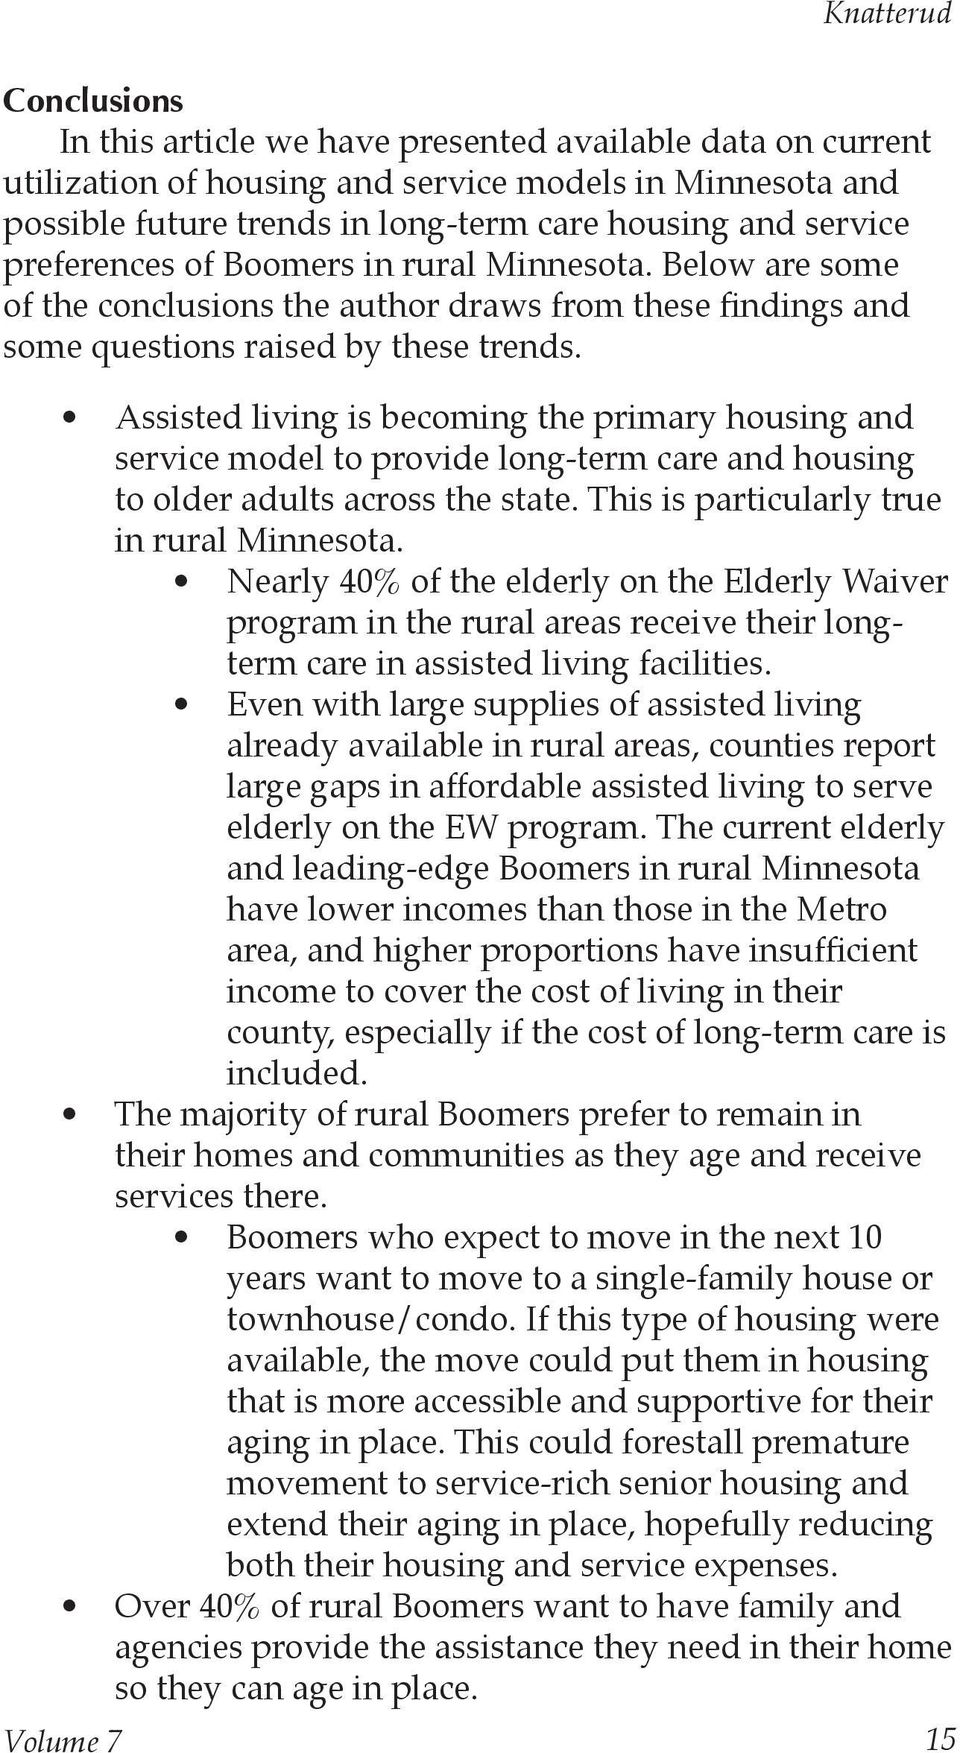 Assisted living is becoming the primary housing and service model to provide long-term care and housing to older adults across the state. This is particularly true in rural Minnesota.